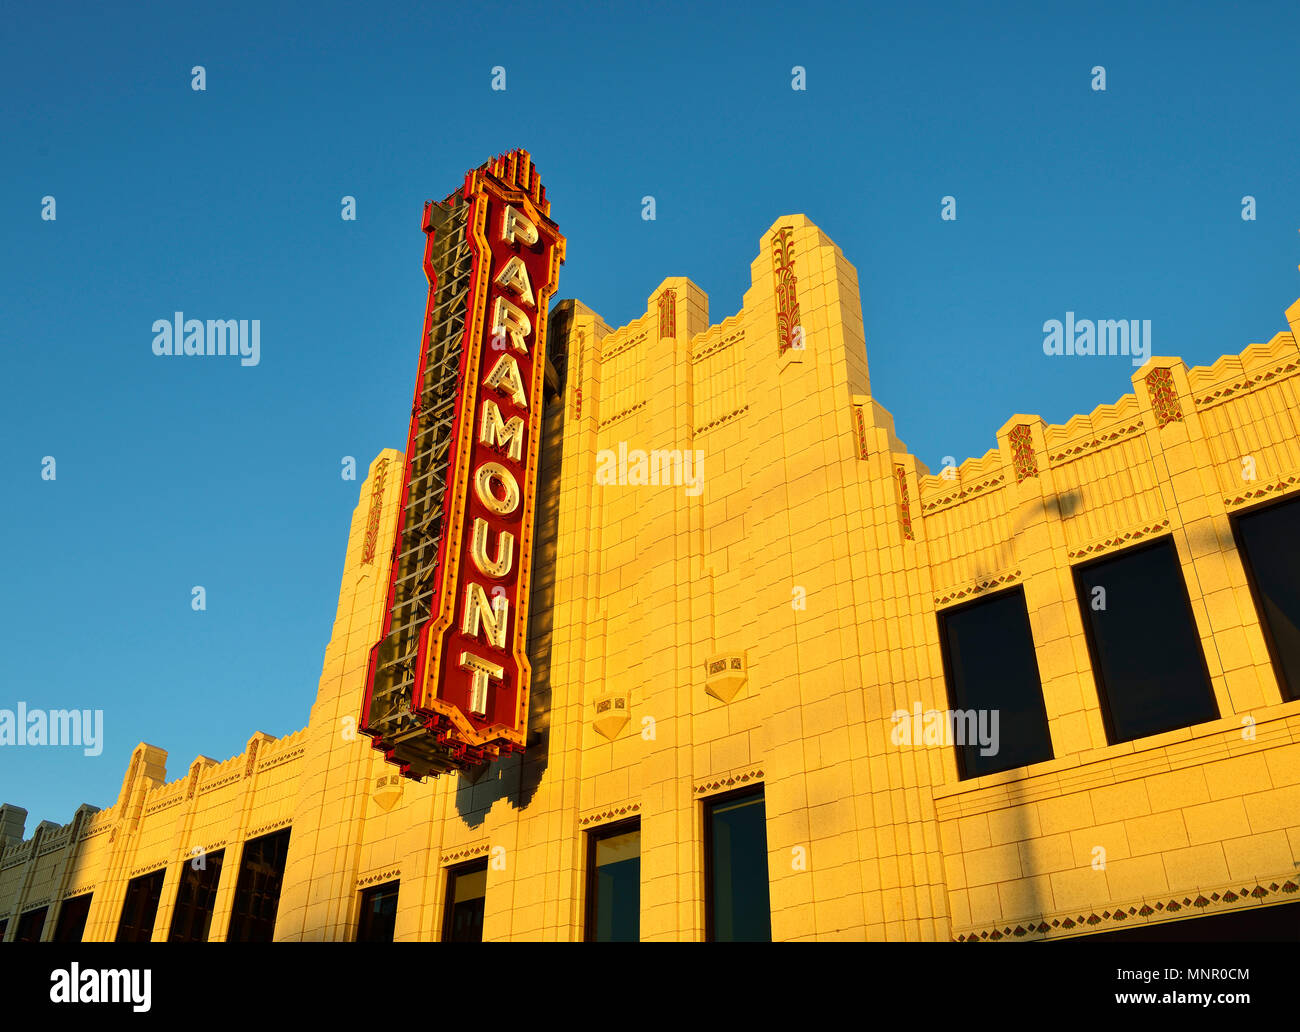 Paramount Cinema, Amarillo, Texas, USA - Stock Image